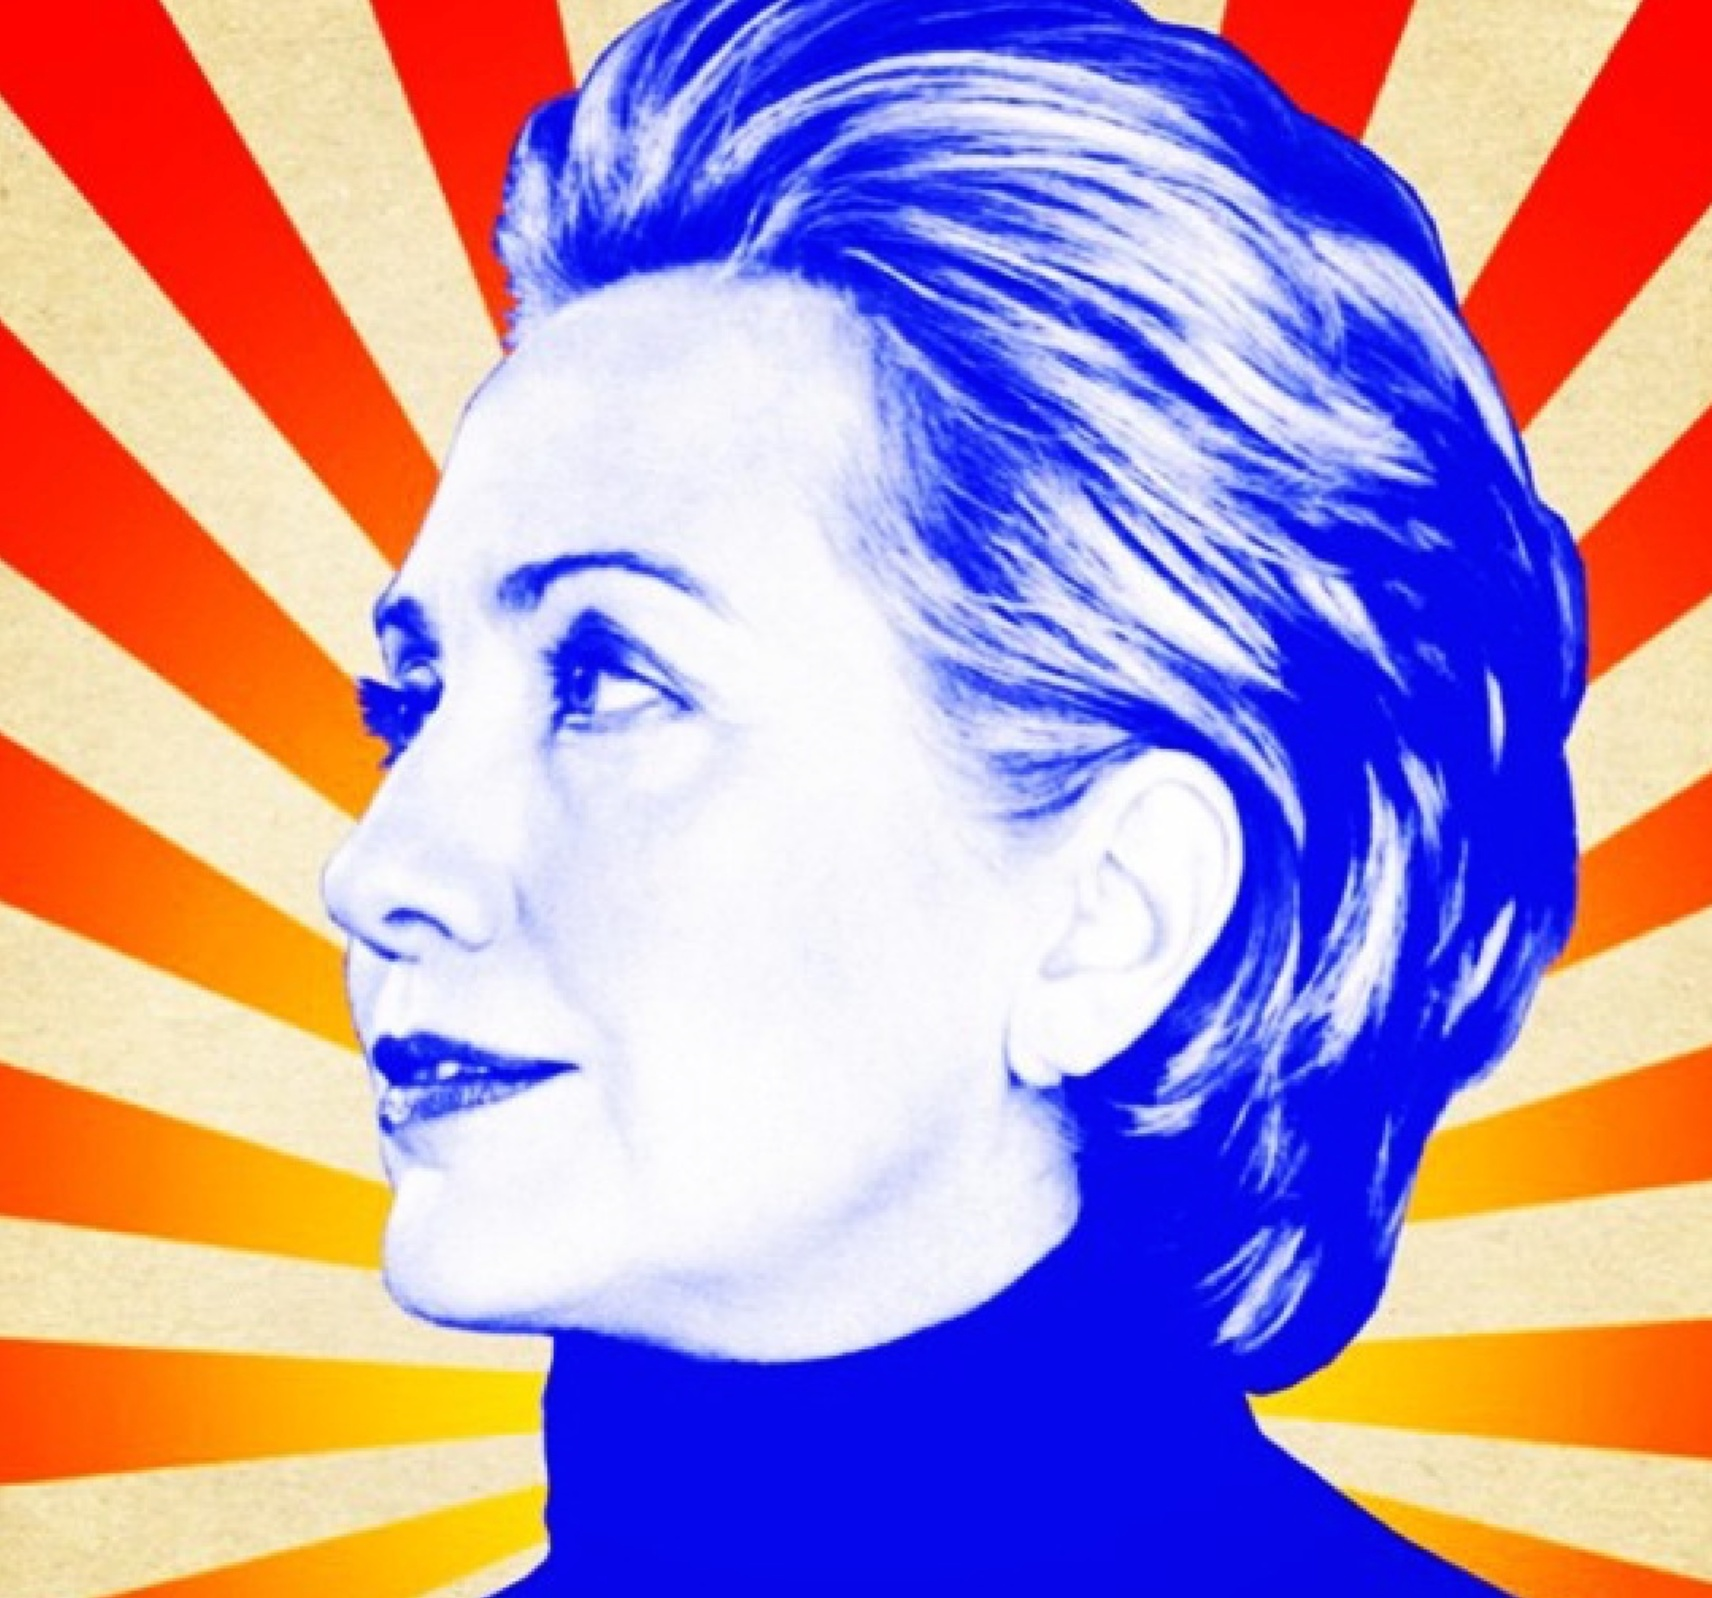 hillary clinton, pop art, politics